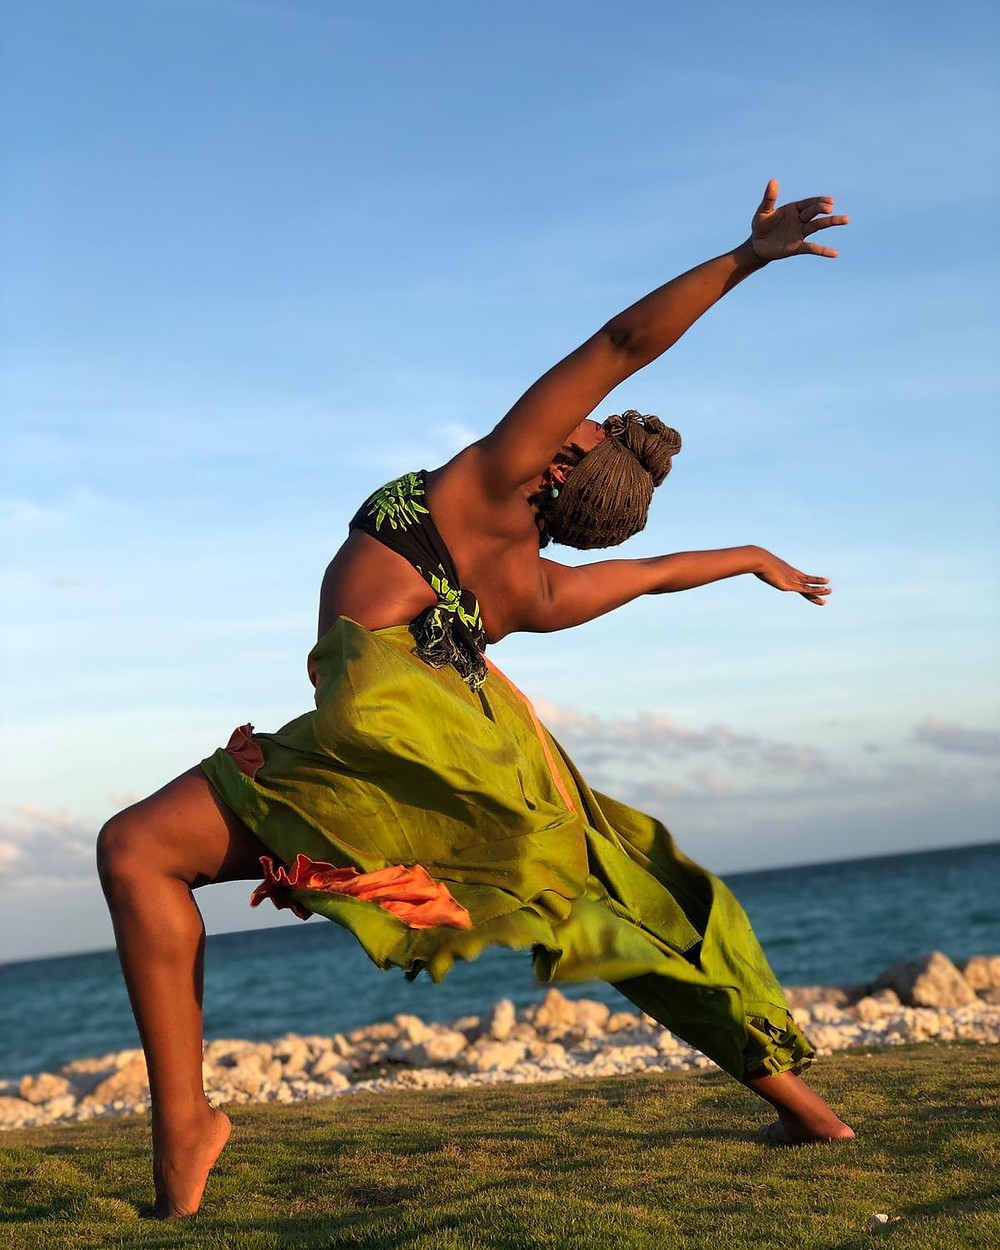 Bahamian woman in a dance pose with ocean in the background